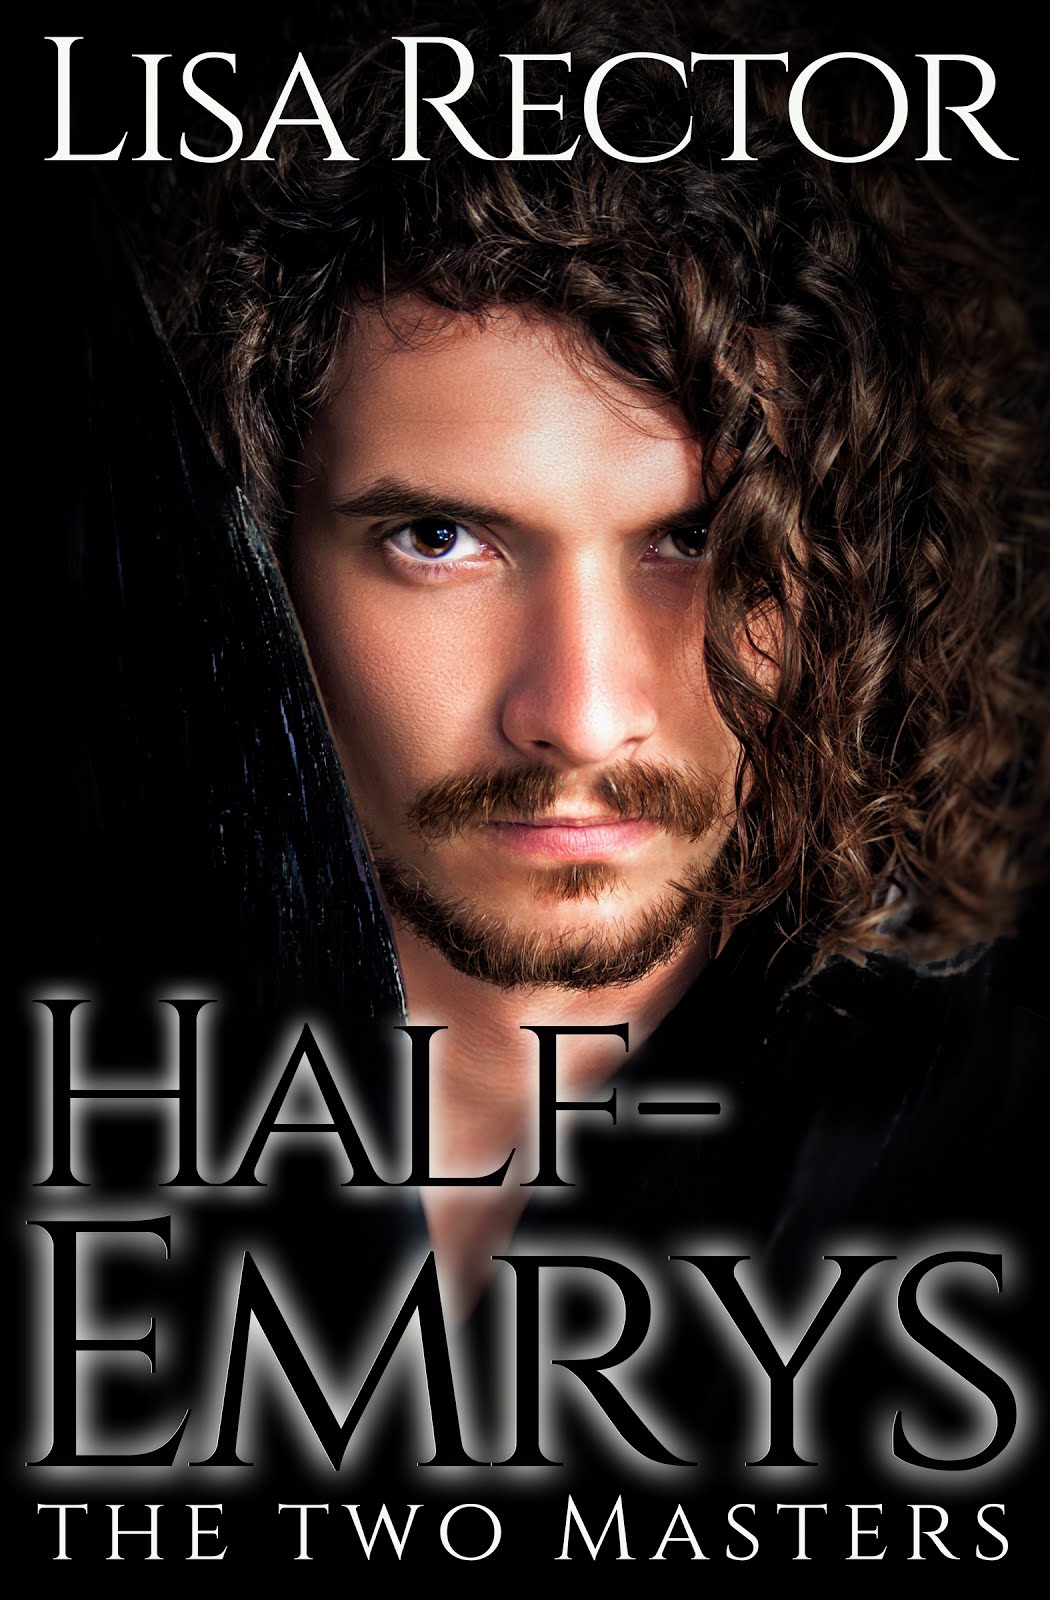 The Emrys Chronicles #2